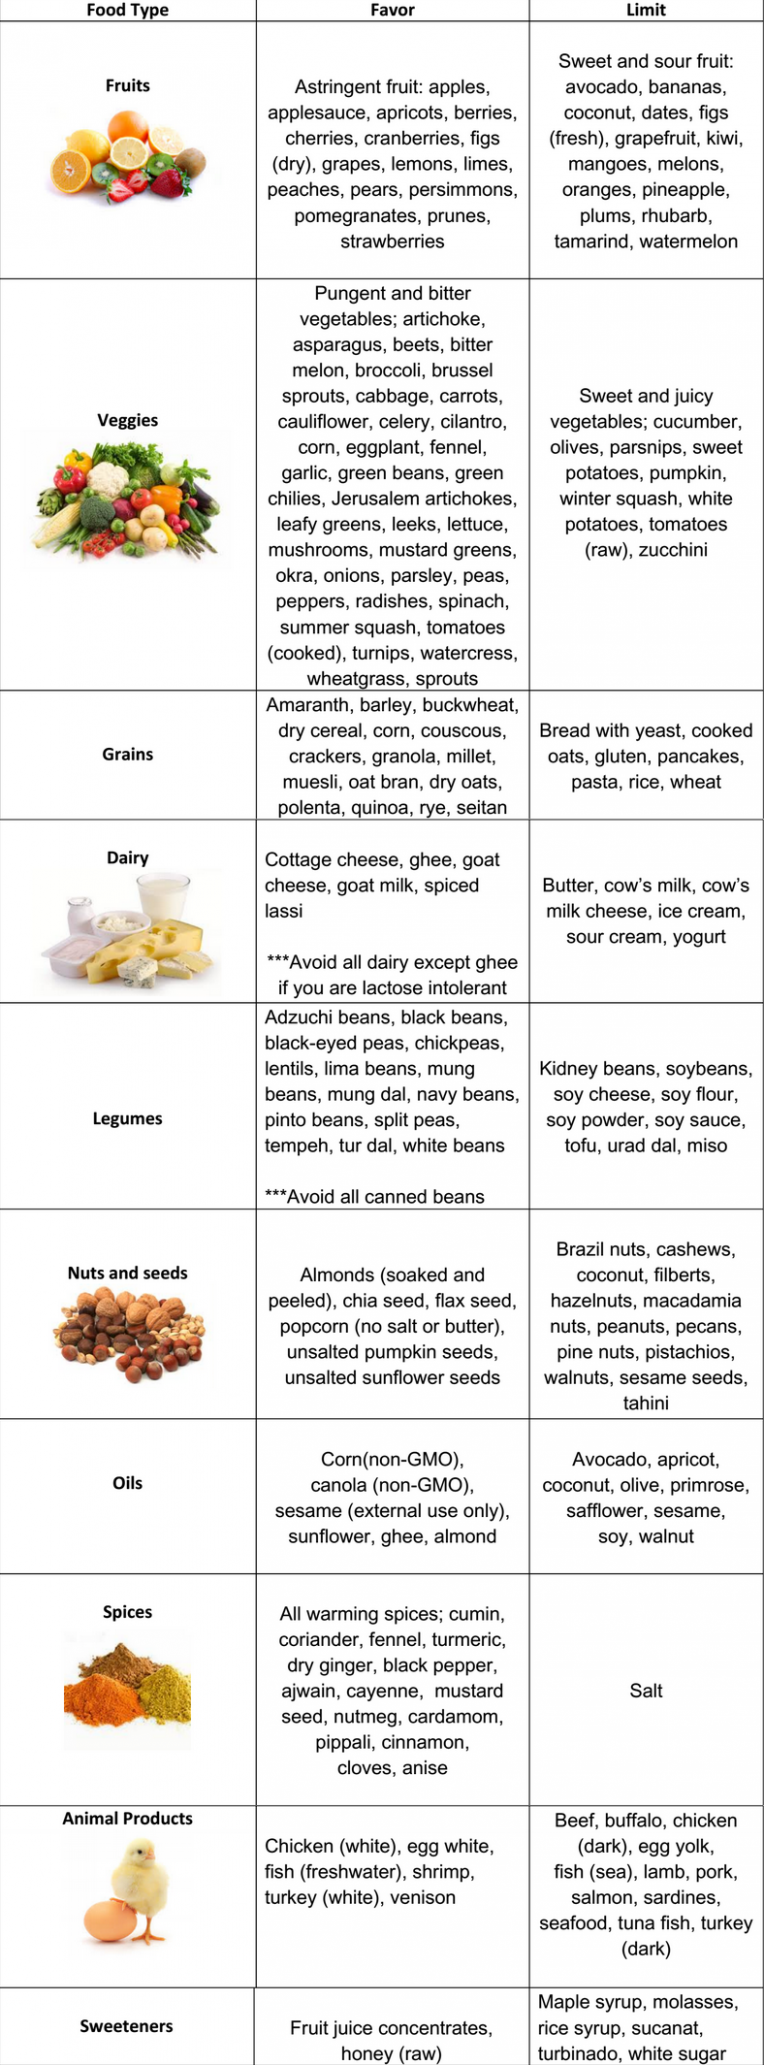 Kapha Diet Chart | Ayurvedic diet, Diet chart, Ayurvedic recipes - Kapha Recipes Weight Loss